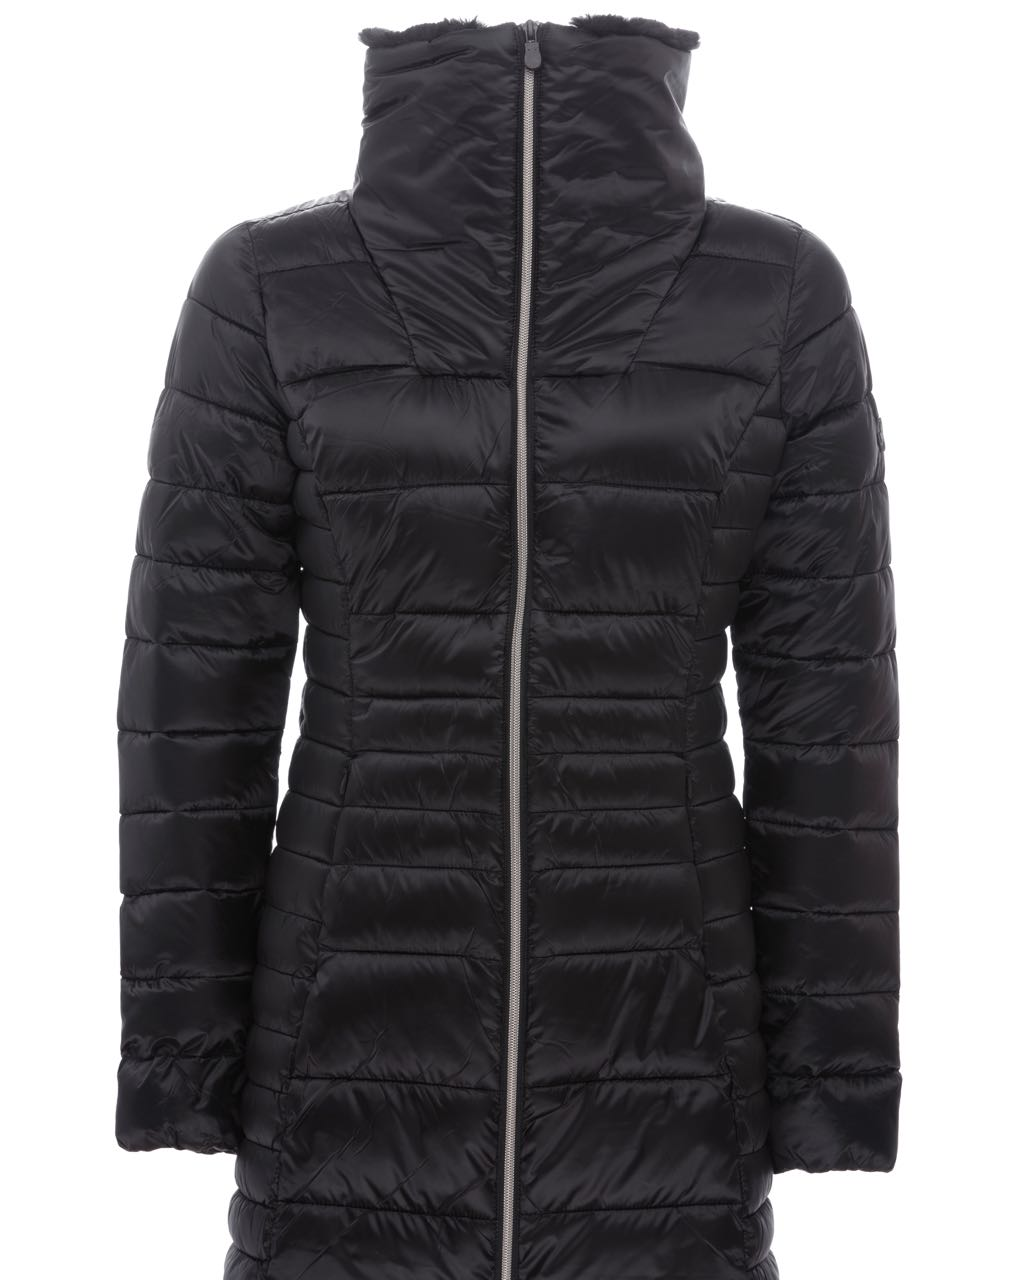 SAVE THE DUCK Women's Coat S4366W-IRIS5 (Black) | Buy Online ...